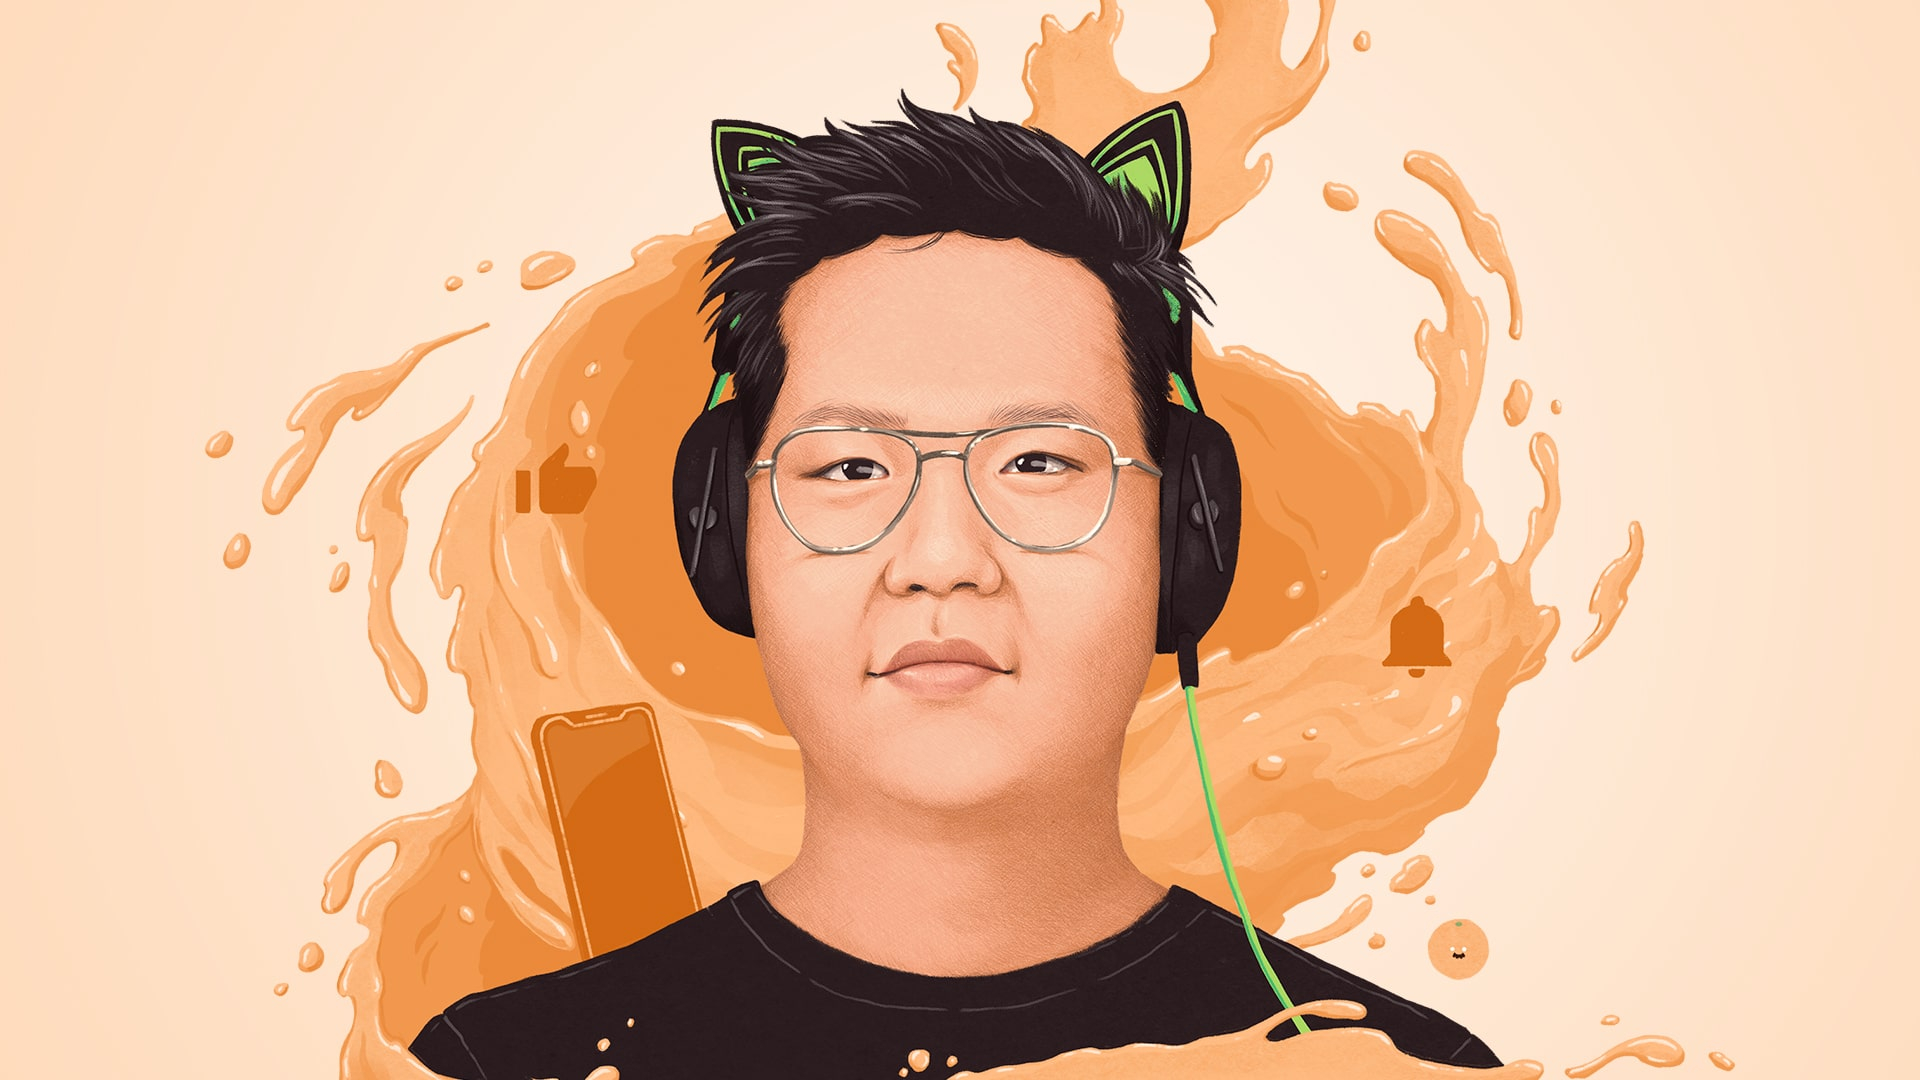 Illustration of YouTuber Jimmy Chau wearing his iconic cat-ear headset and surrounded by a swirl of orange juice.